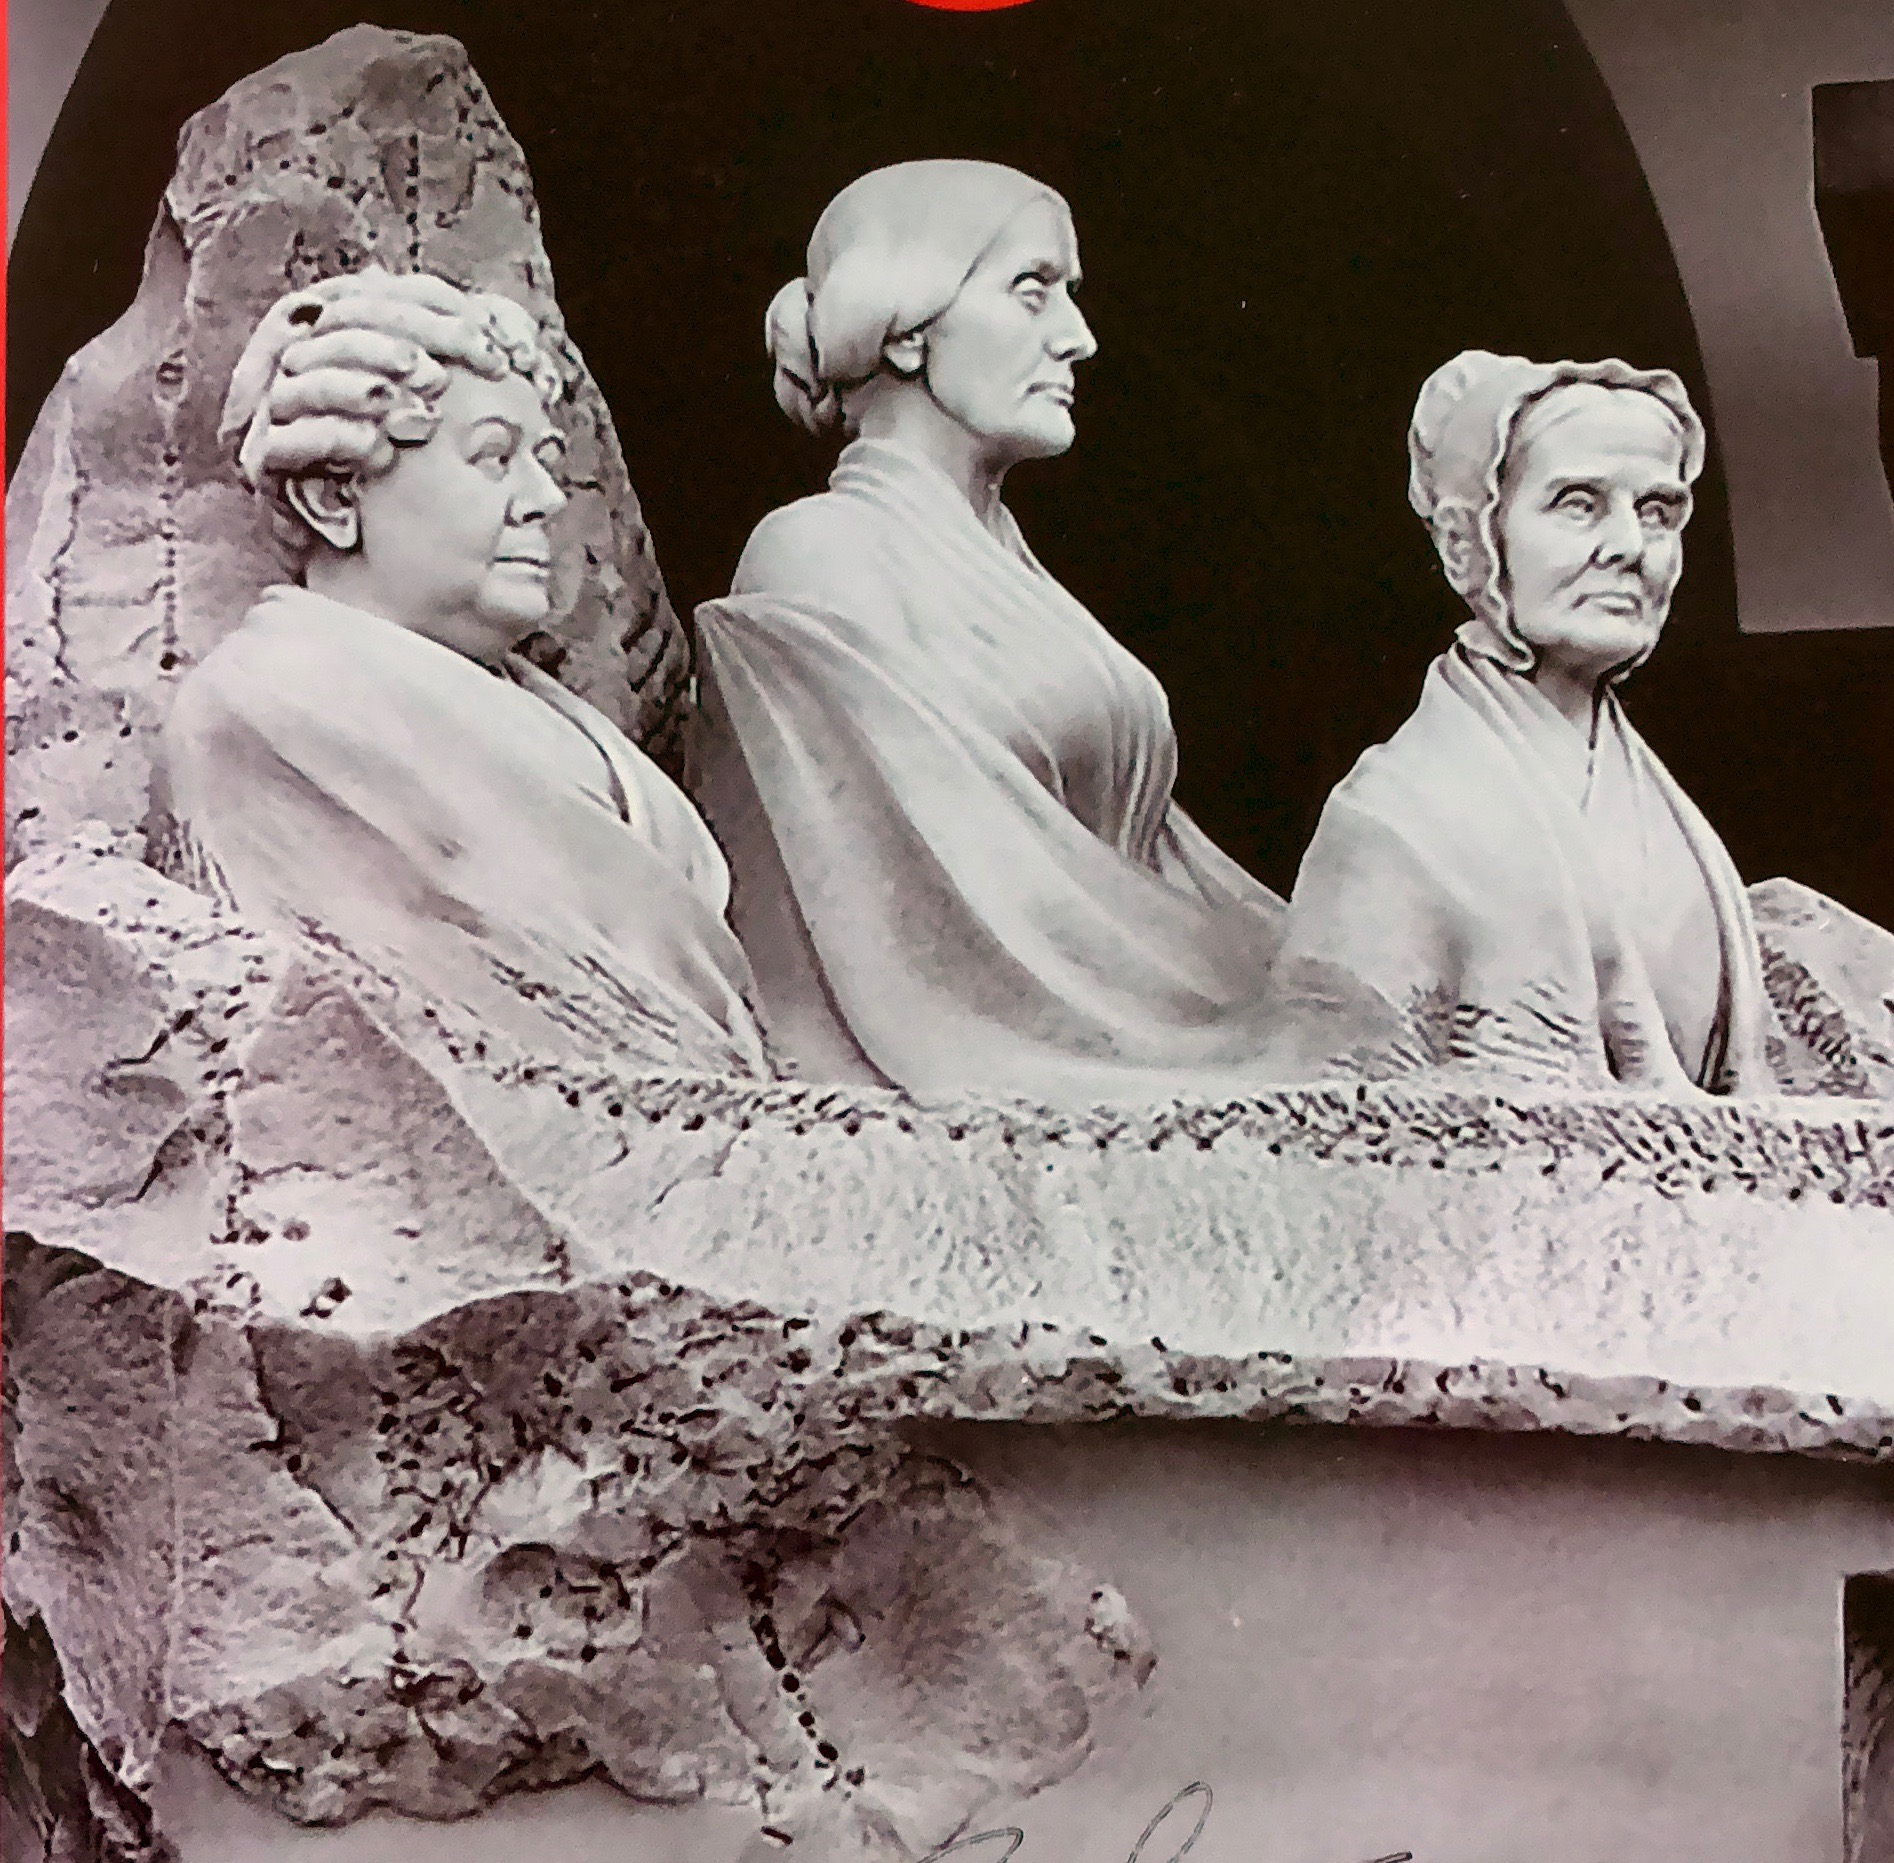 The Portrait Monuments: Lucretia Mott, Elizabeth Cady Stanton and Susan B. Anthony by Adelaide Johnson,  completed in 1921, it took years to finally arrive in the Capitol building.